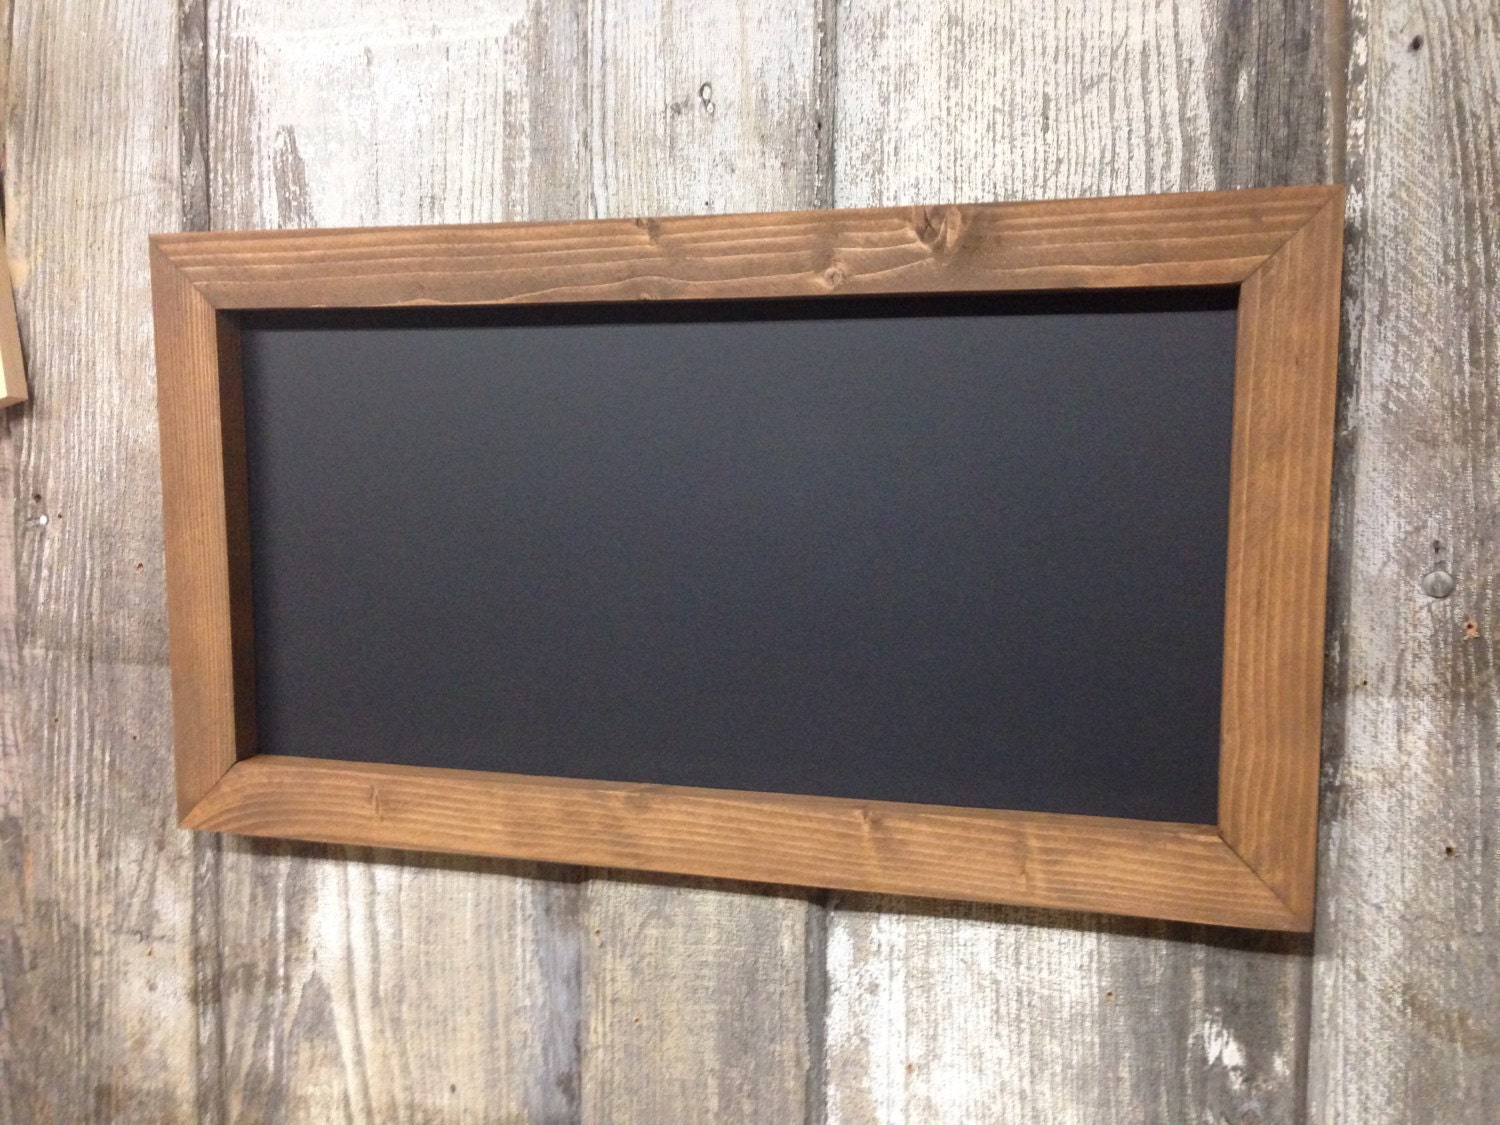 12 x 24 rustic framed chalkboard rustic wedding. Black Bedroom Furniture Sets. Home Design Ideas